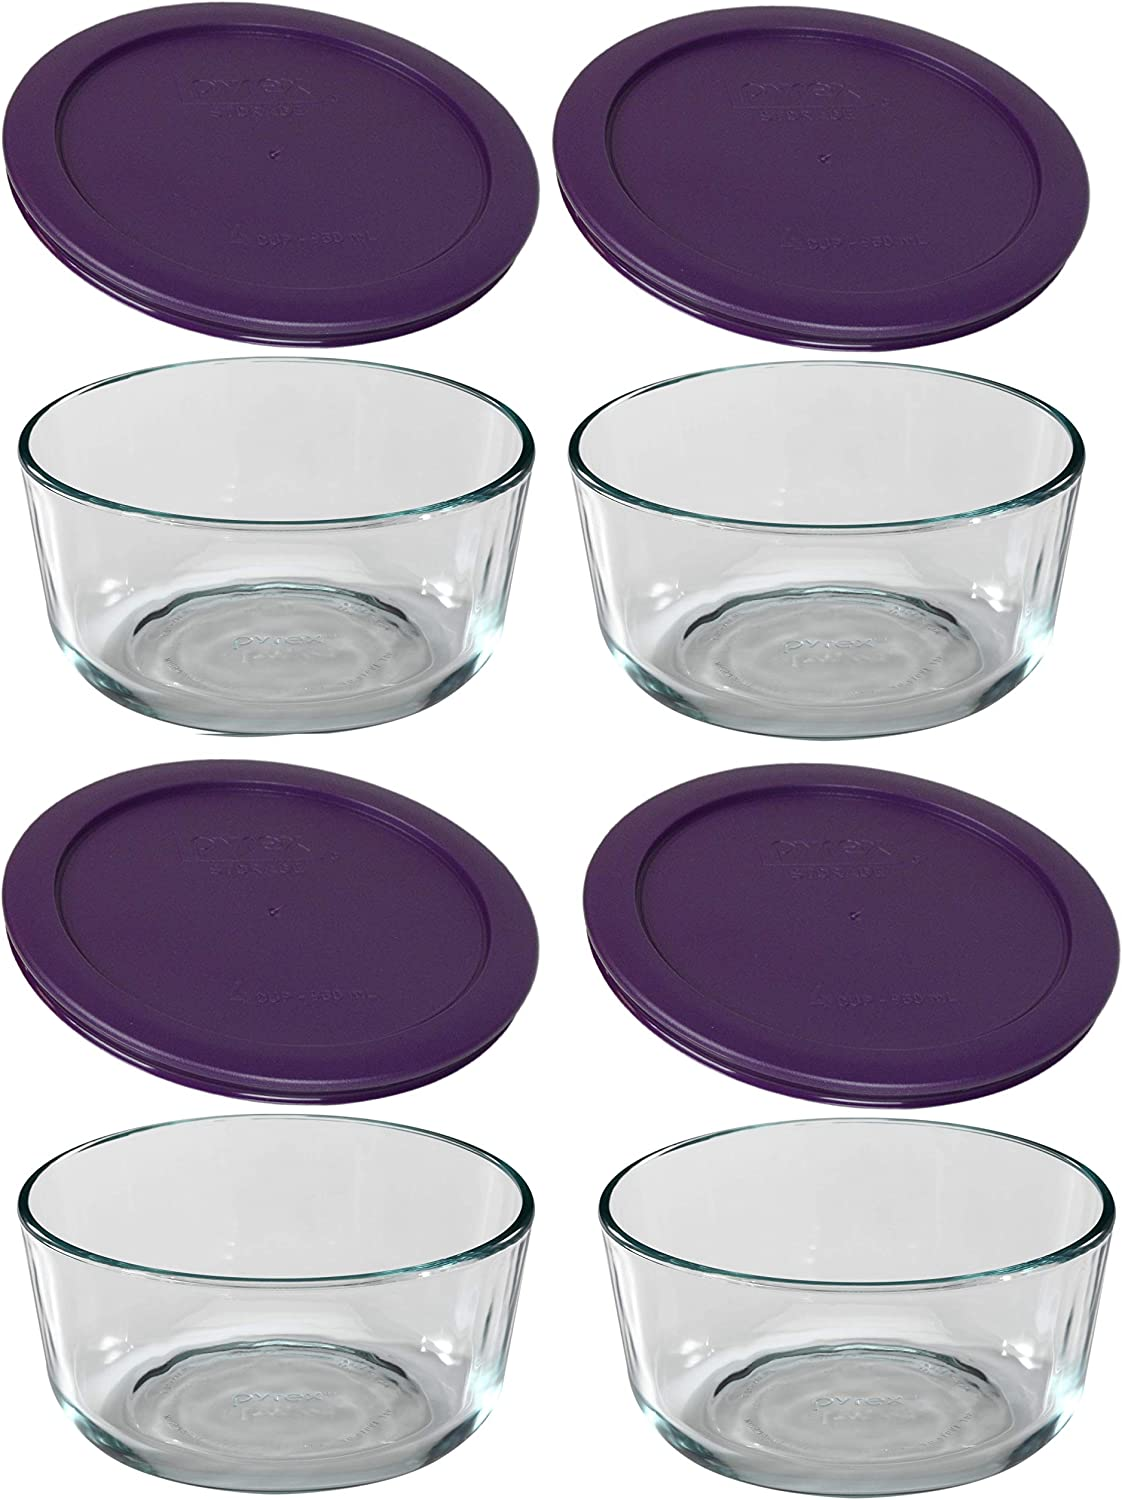 Pyrex Simply Store Glass 1 Cup Food Storage Set Purple, (pack of 4)